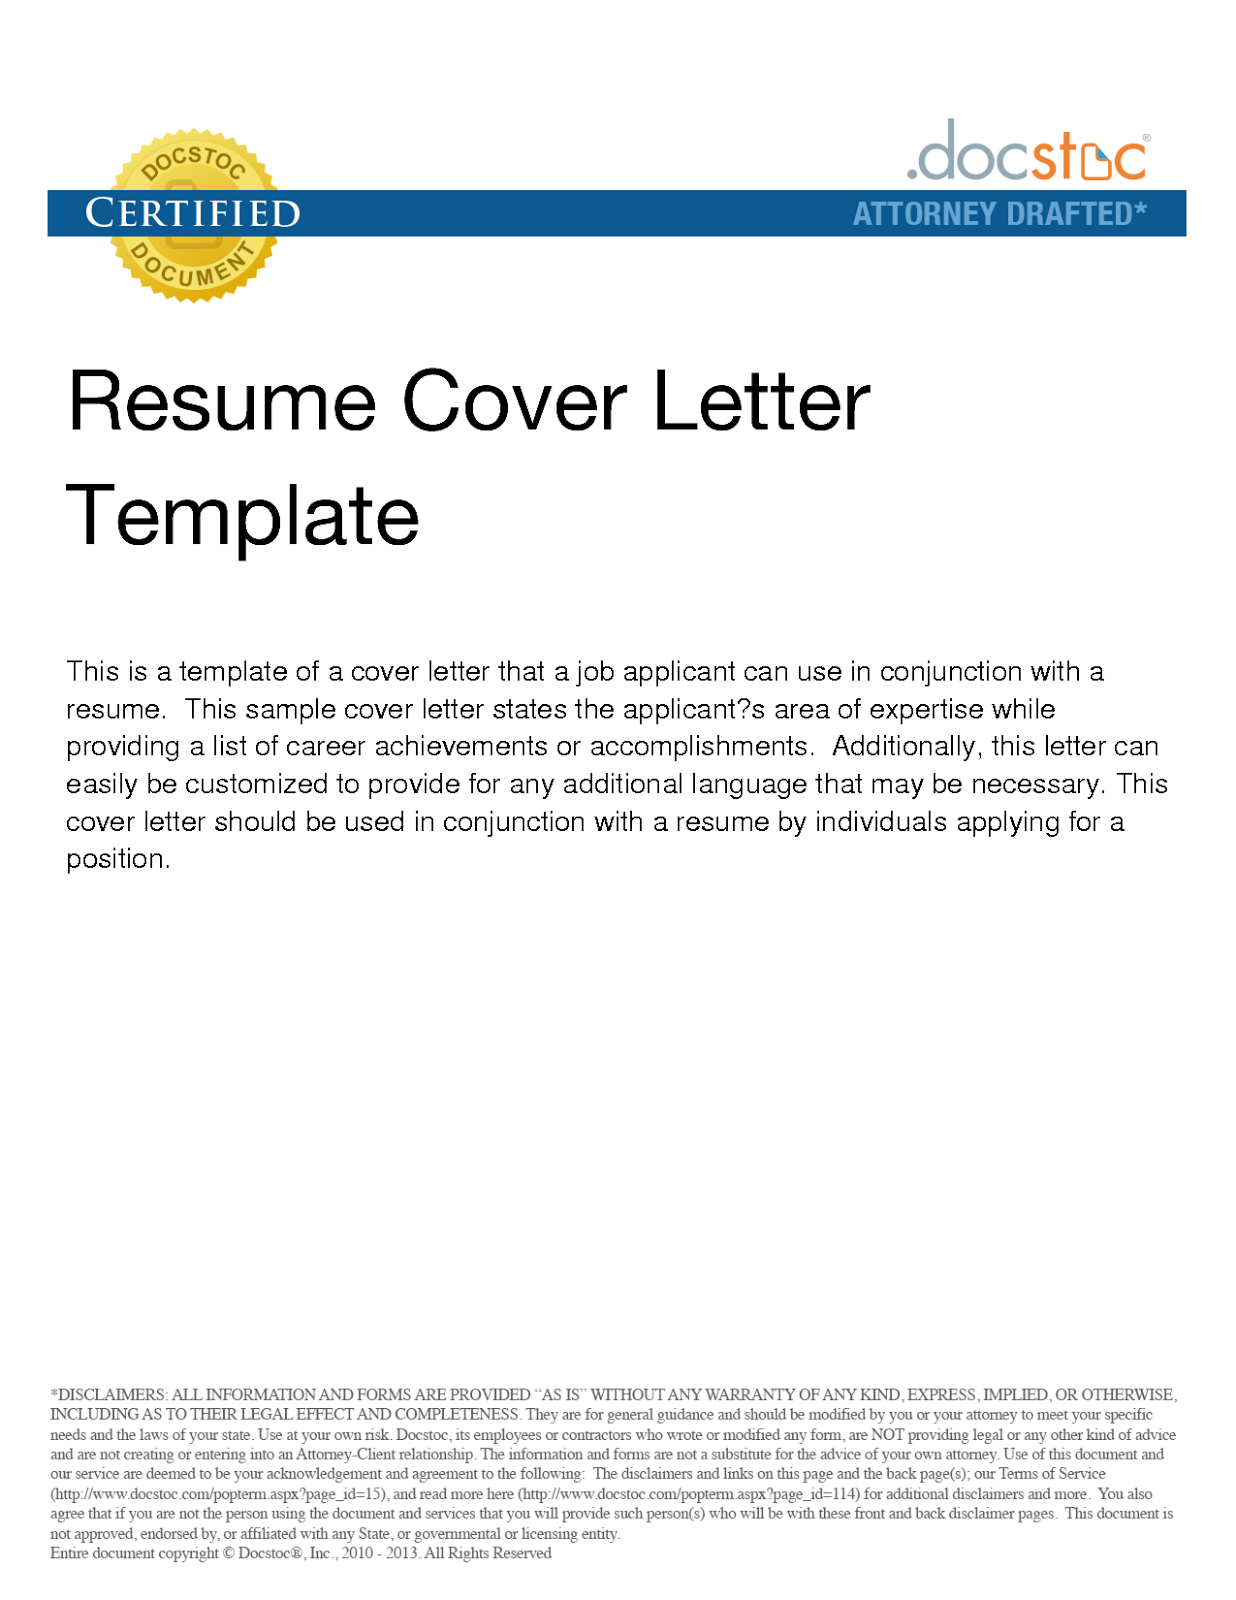 General Cover Letter Examples For Resume